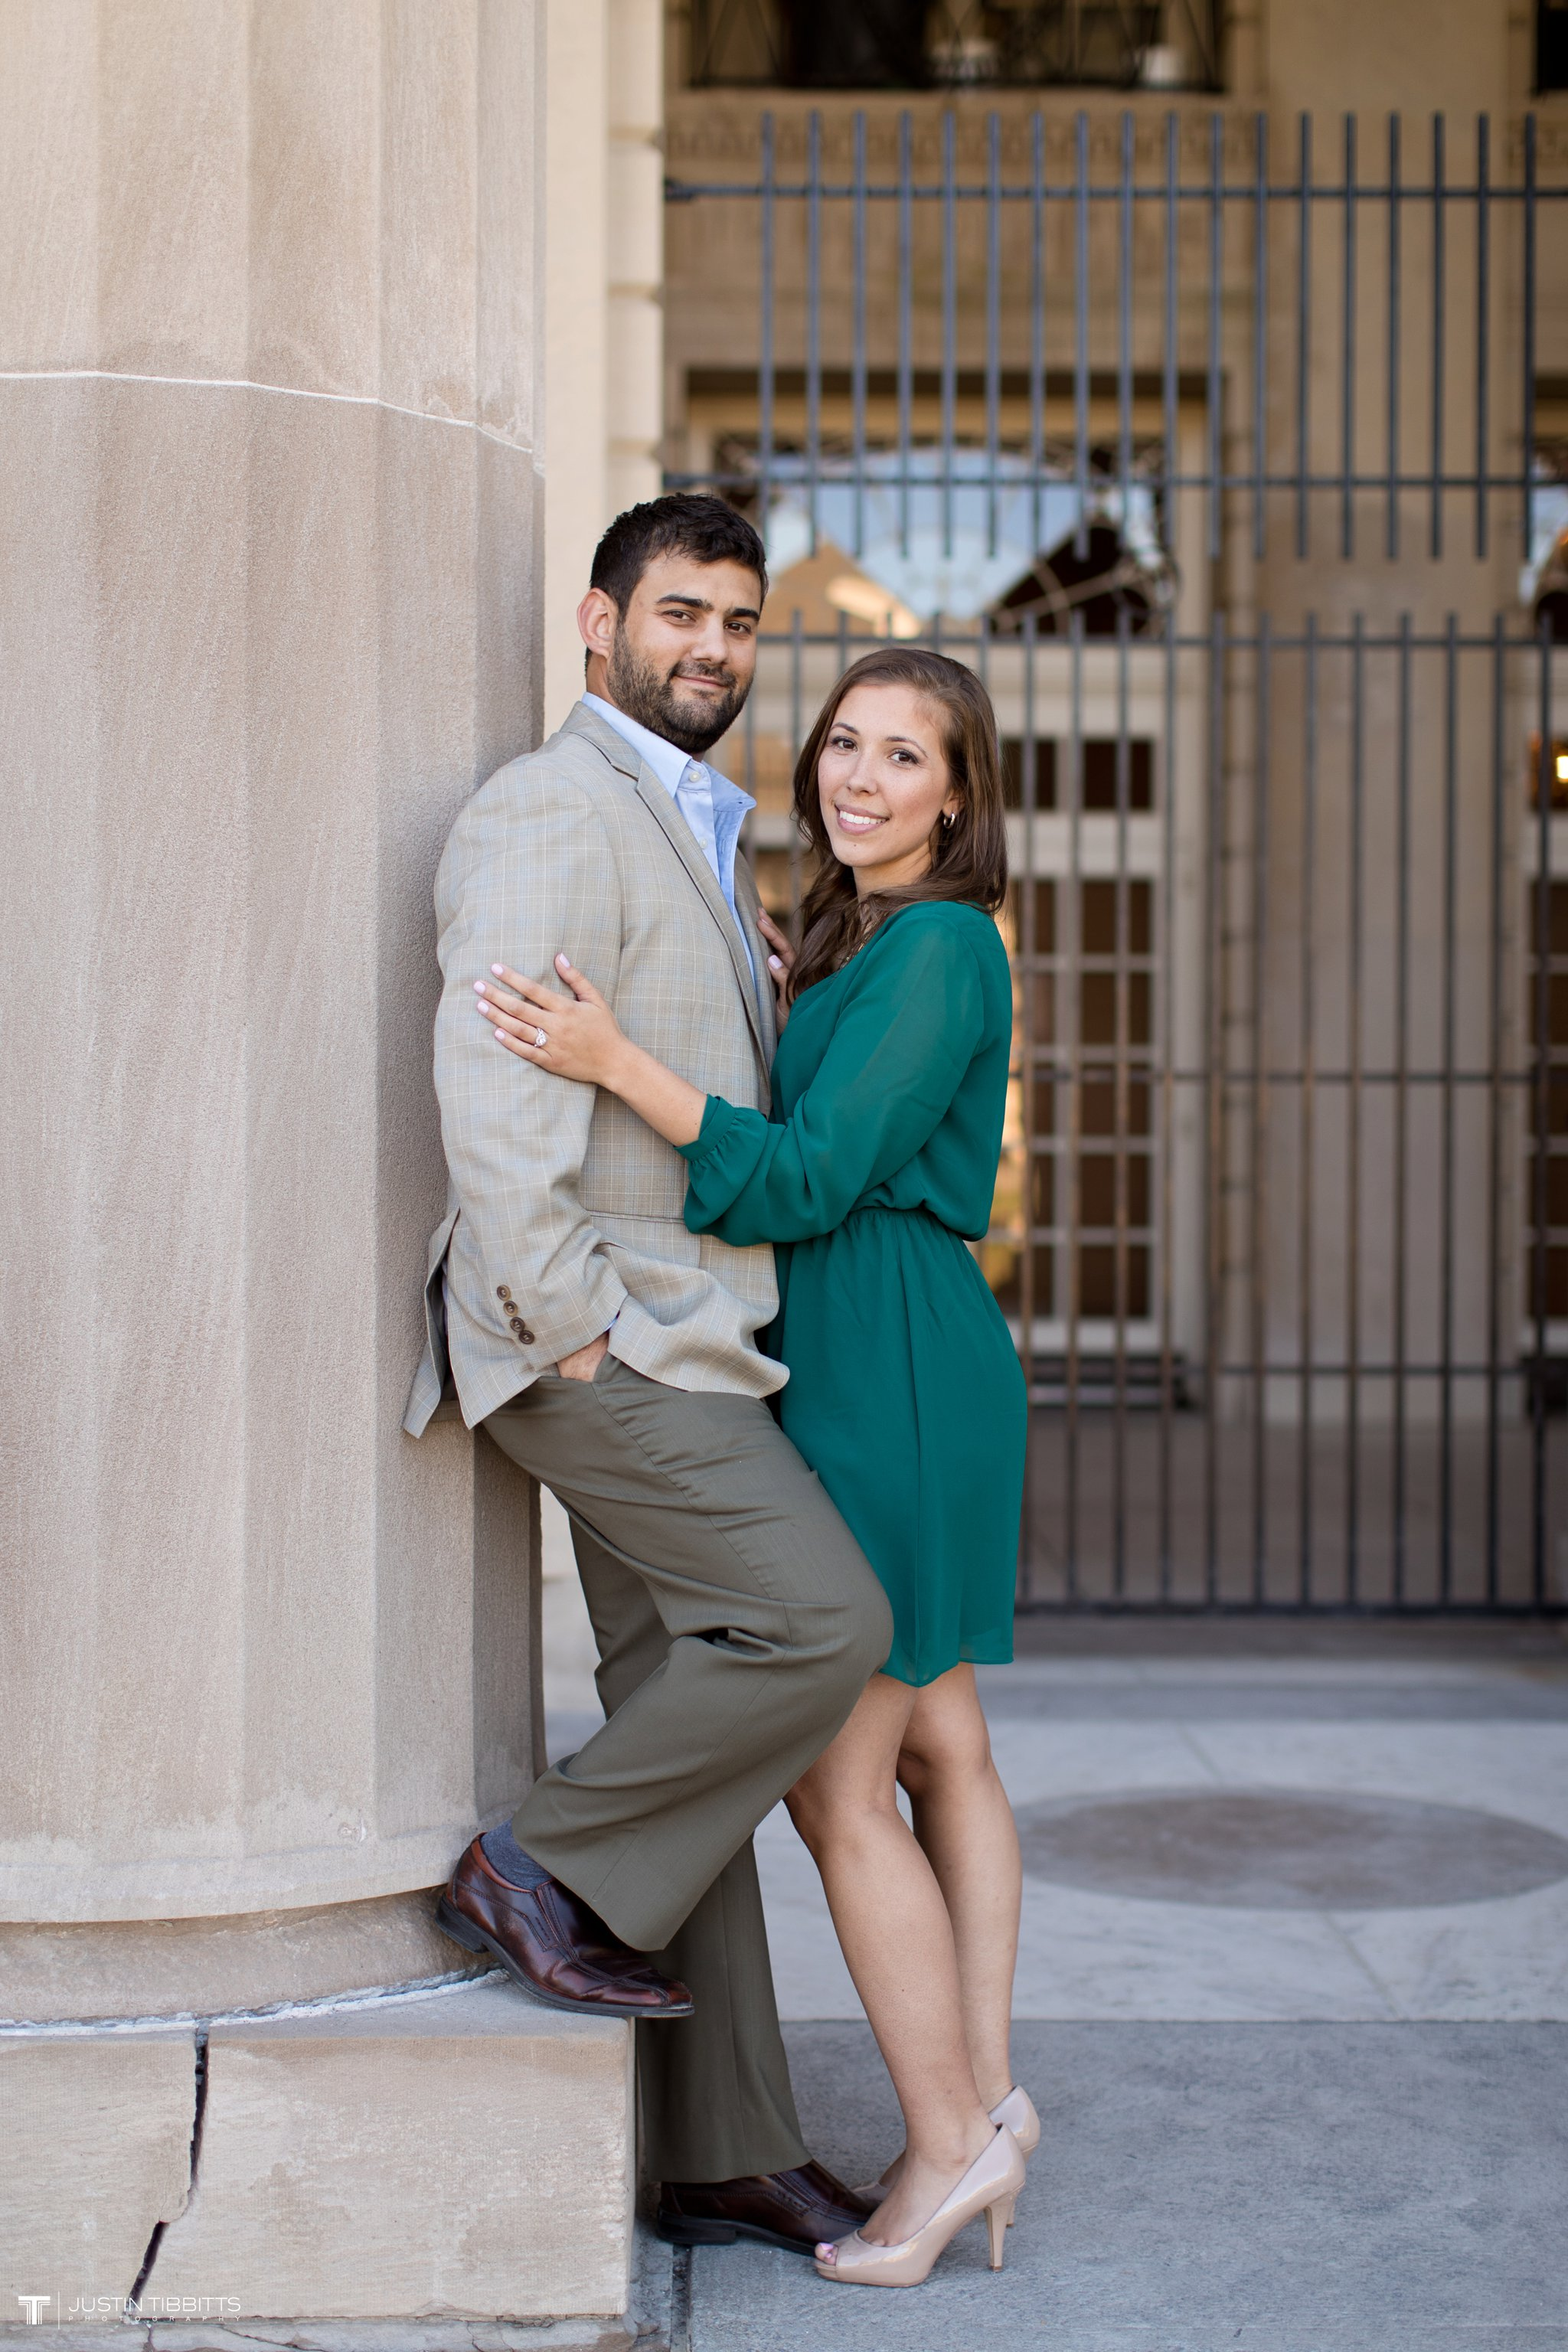 saratoga-springs-ny-engagement-shoot-with-nick-and-ciara_0006